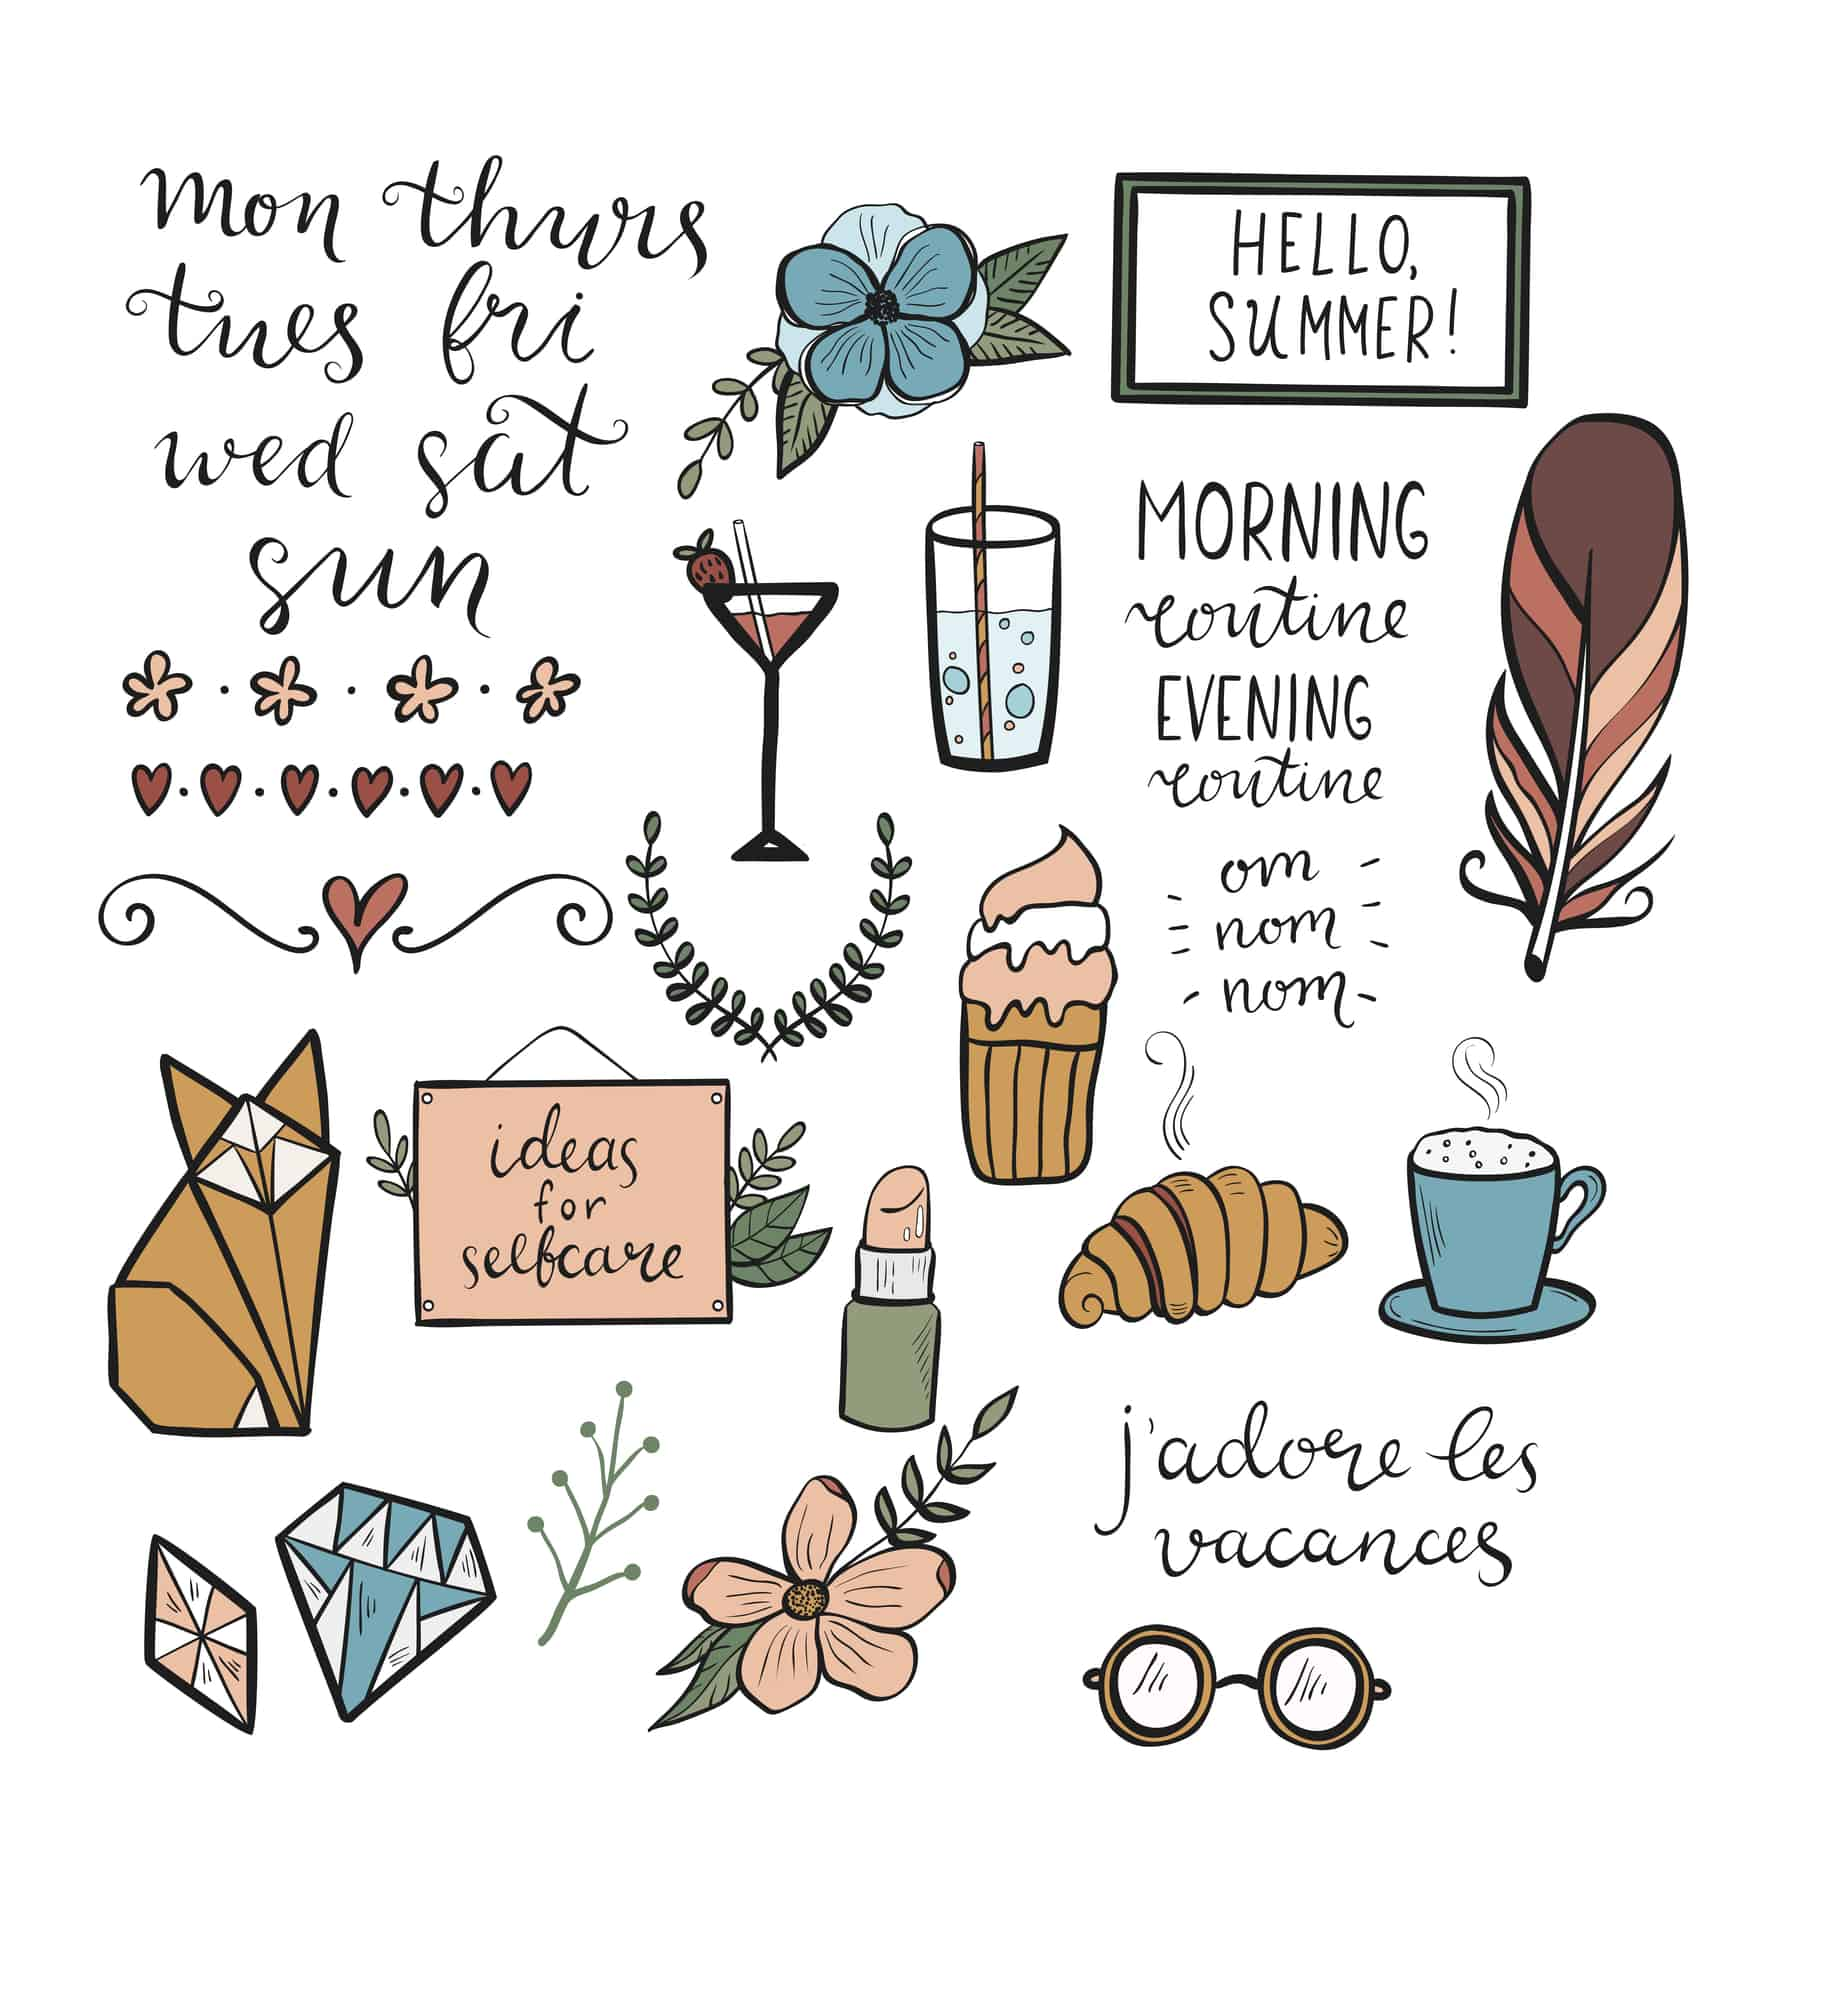 image of self care ideas for how to start a self care journal